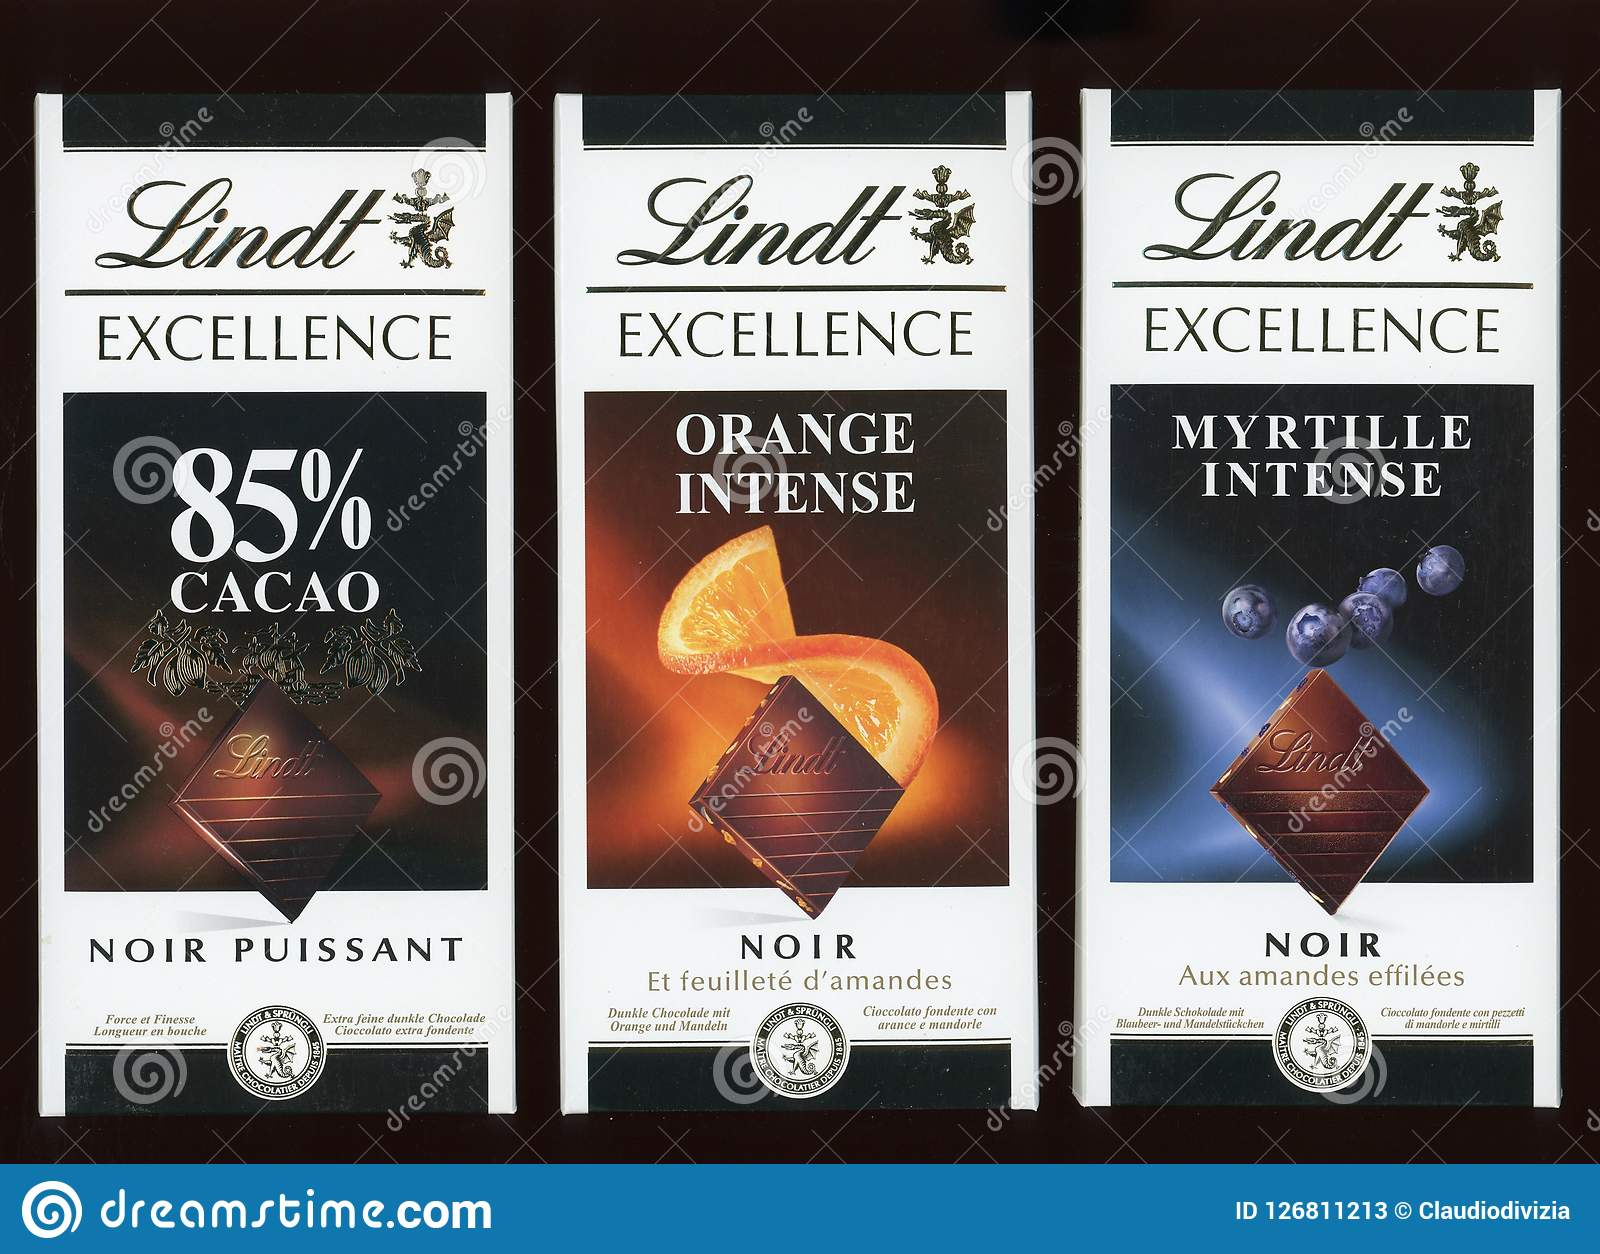 Lindt donkere chocolade